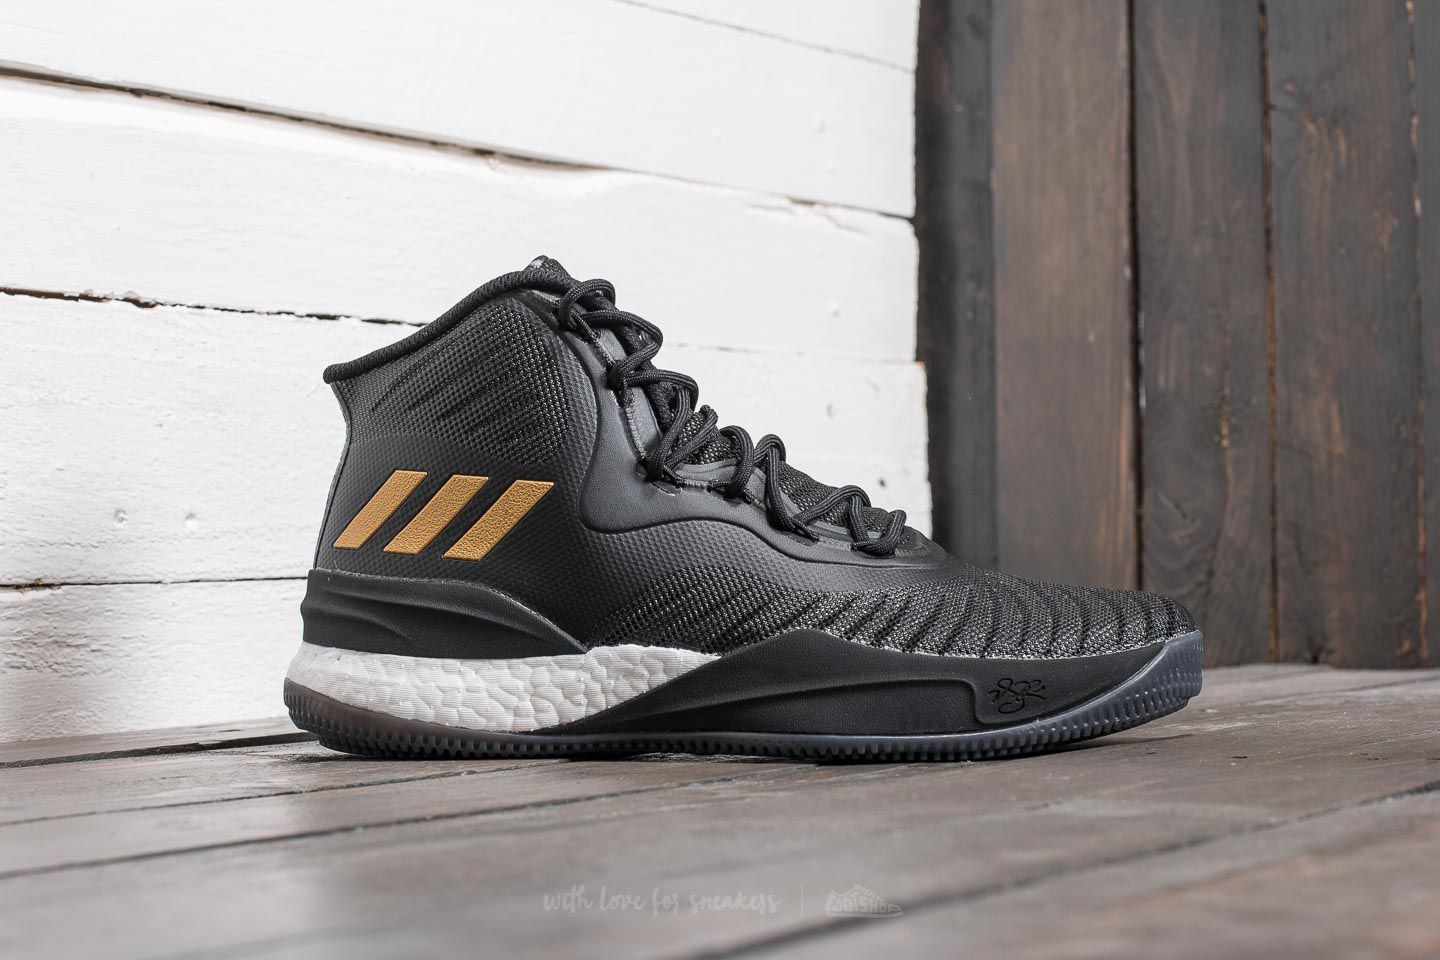 f45786f349ad ... where to buy 657f6 059b4 adidas D Rose 8 Core Black Gold Metalic Ftw  White at ...